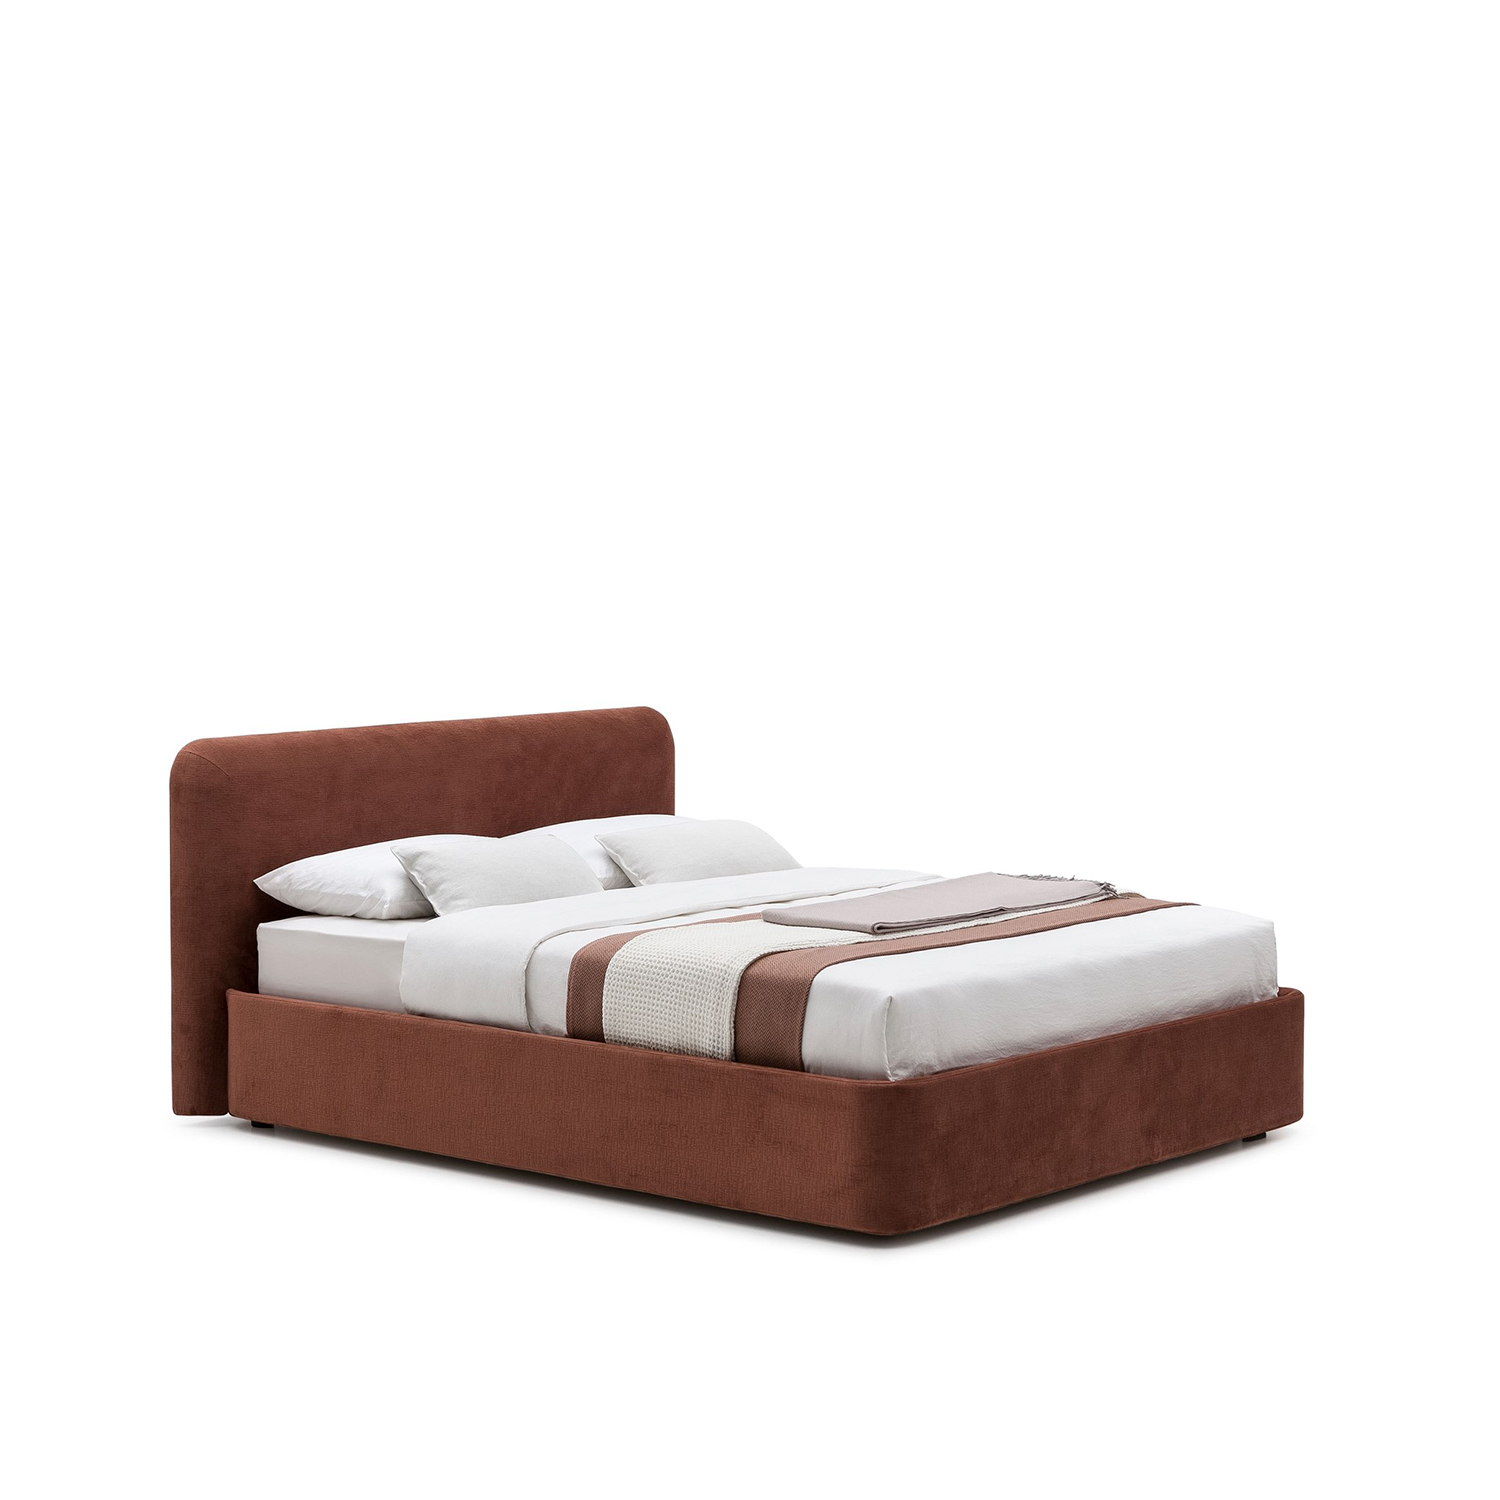 Joy Storage Bed  - Devoted to the pleasure of enjoying the nightlife, Joy plays with the opposition between the soft and important volume of the headboard and the bedframe, and the thin and geometric metallic legs.‎ The result is a pleasant and light feeling, with an additional touch of glamorous elegance, due to the possibility to customize its fabrics and colors.‎